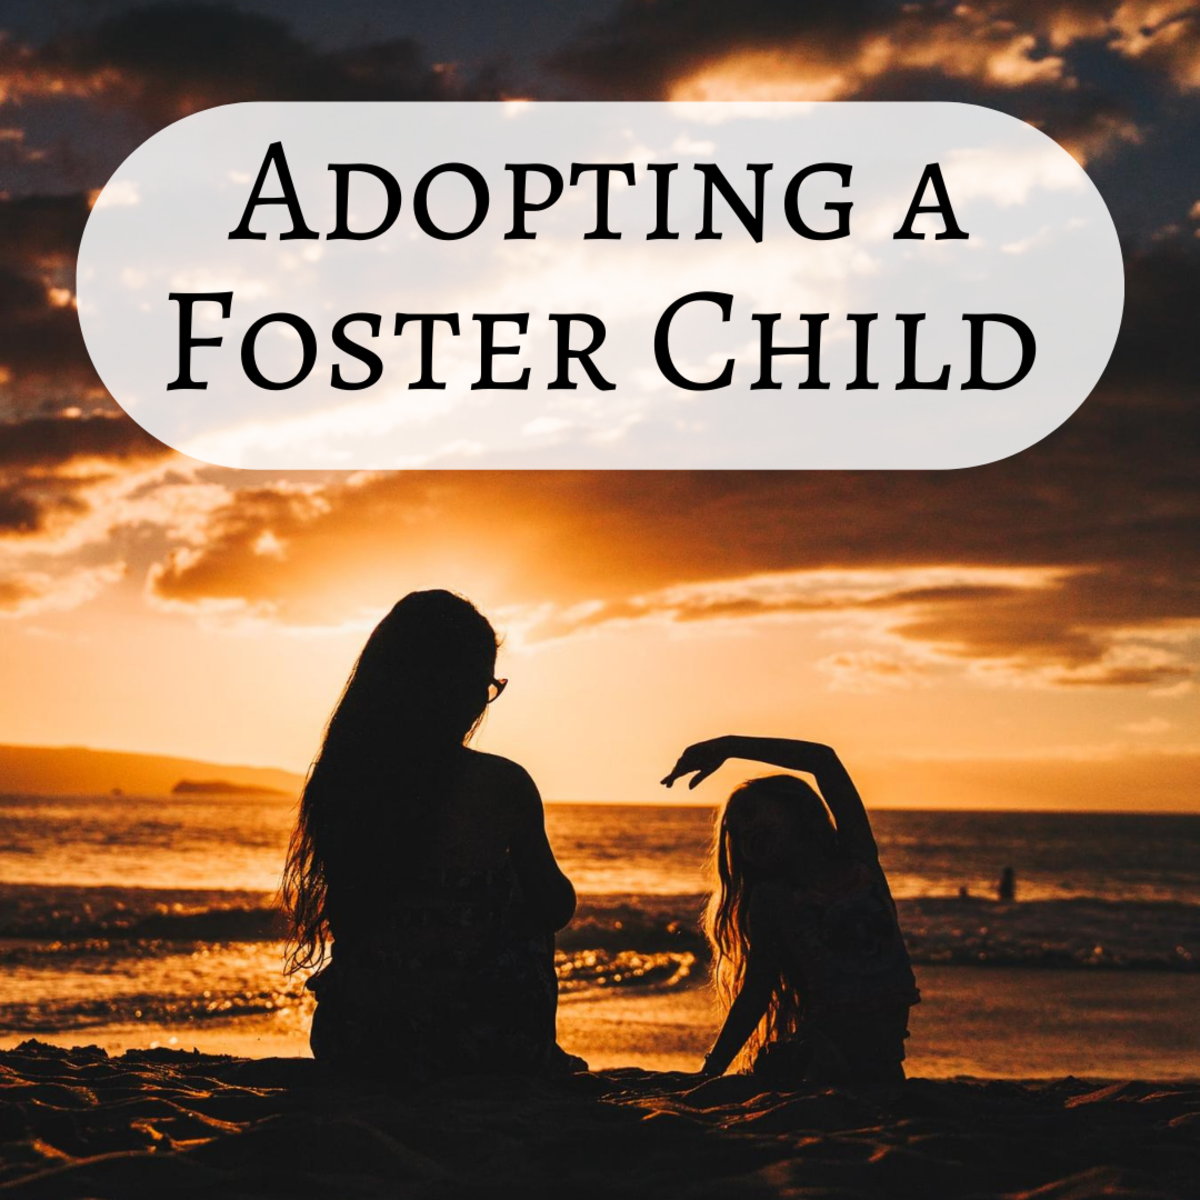 Learn about adoption through the foster care system and how to get started as a foster parent.